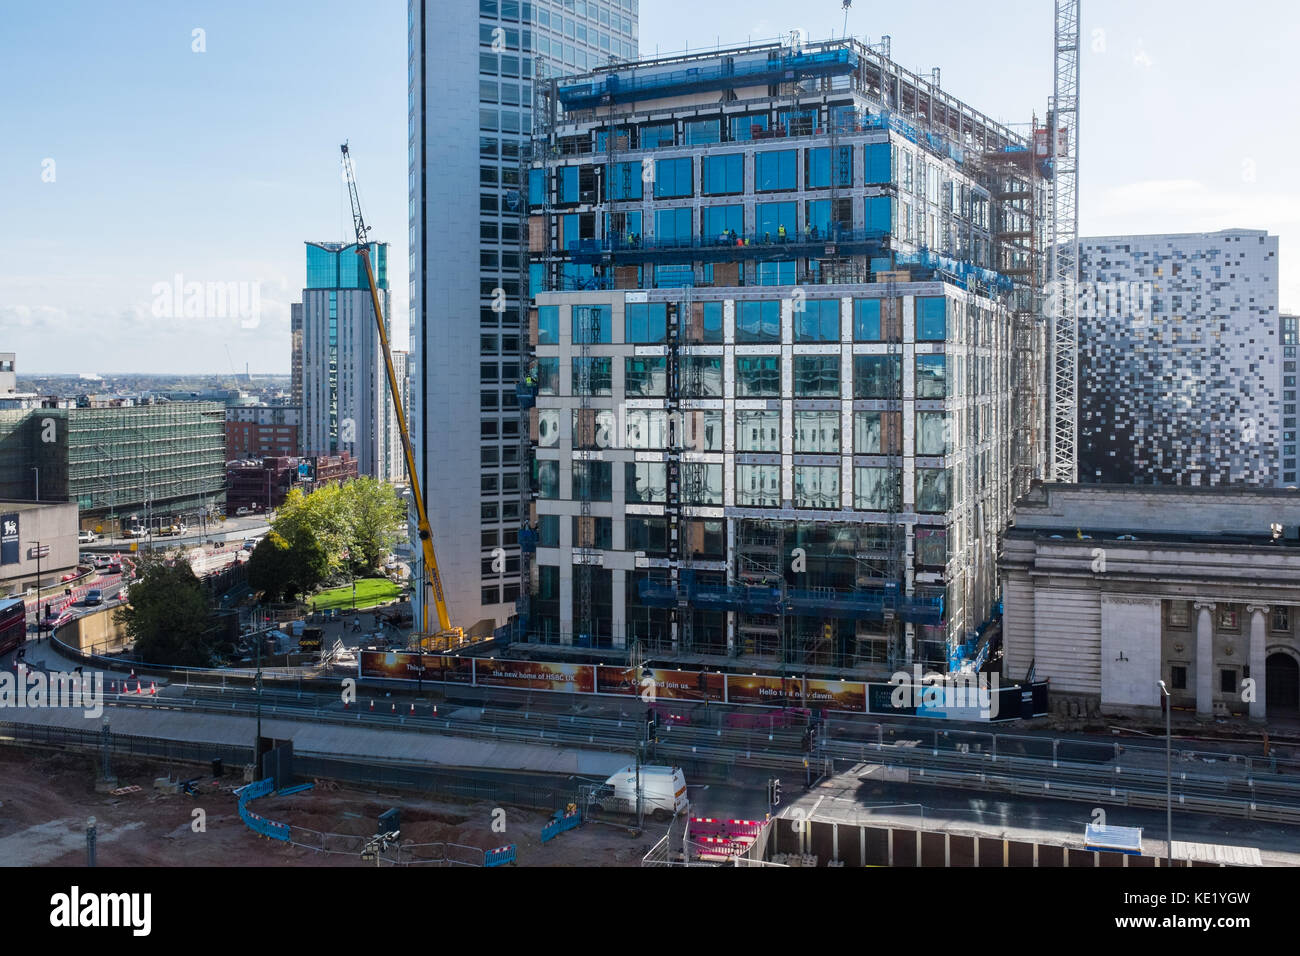 The new Birmingham HSBC Bank headquarters being constructed